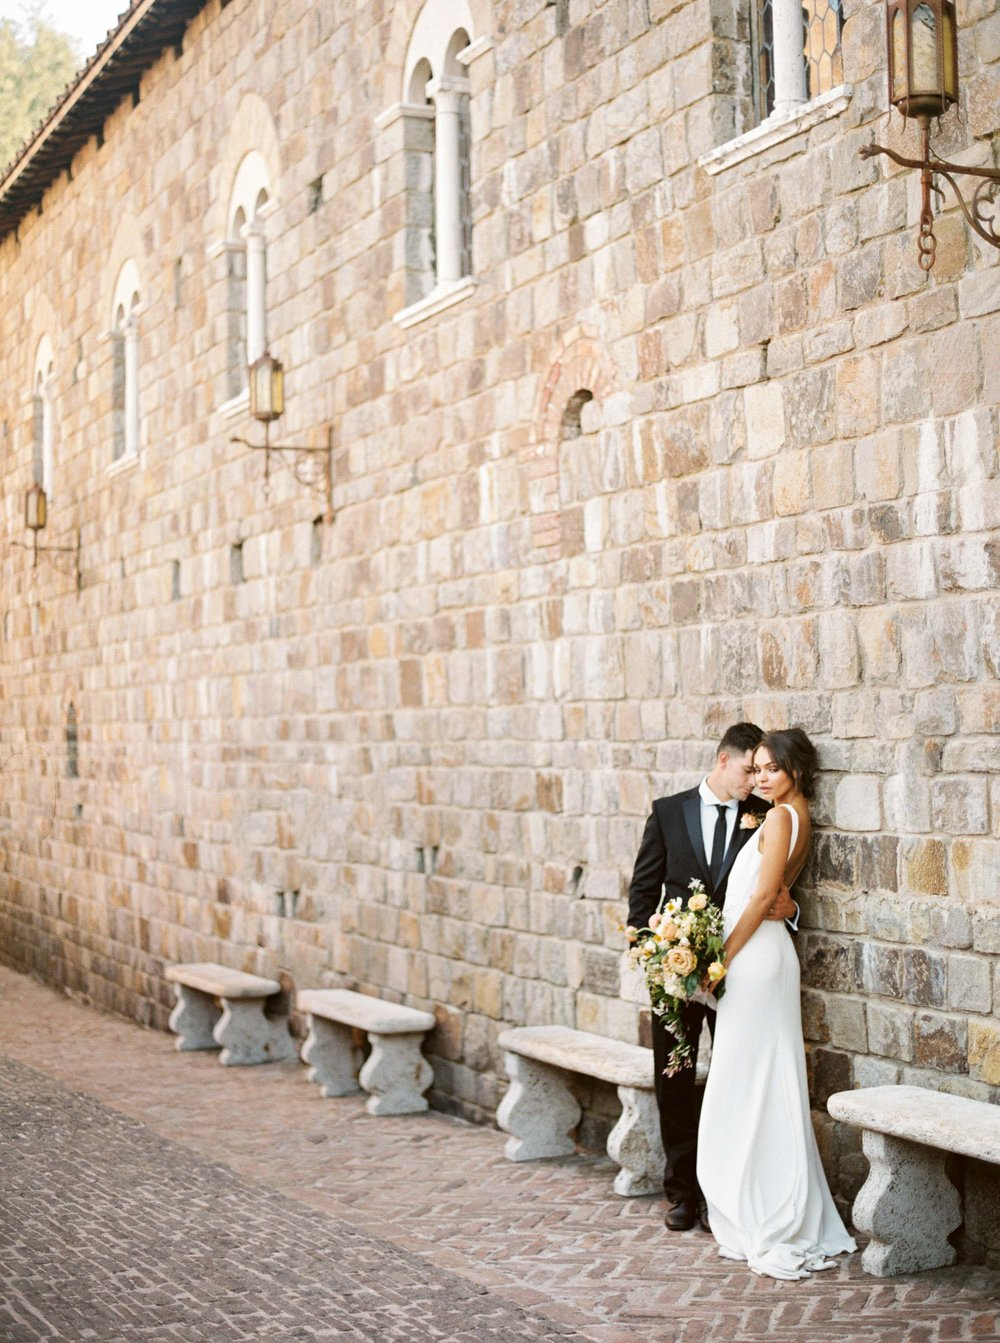 022napa_wedding_photographer_and_videographer_destination_and_elopement_photography.jpg